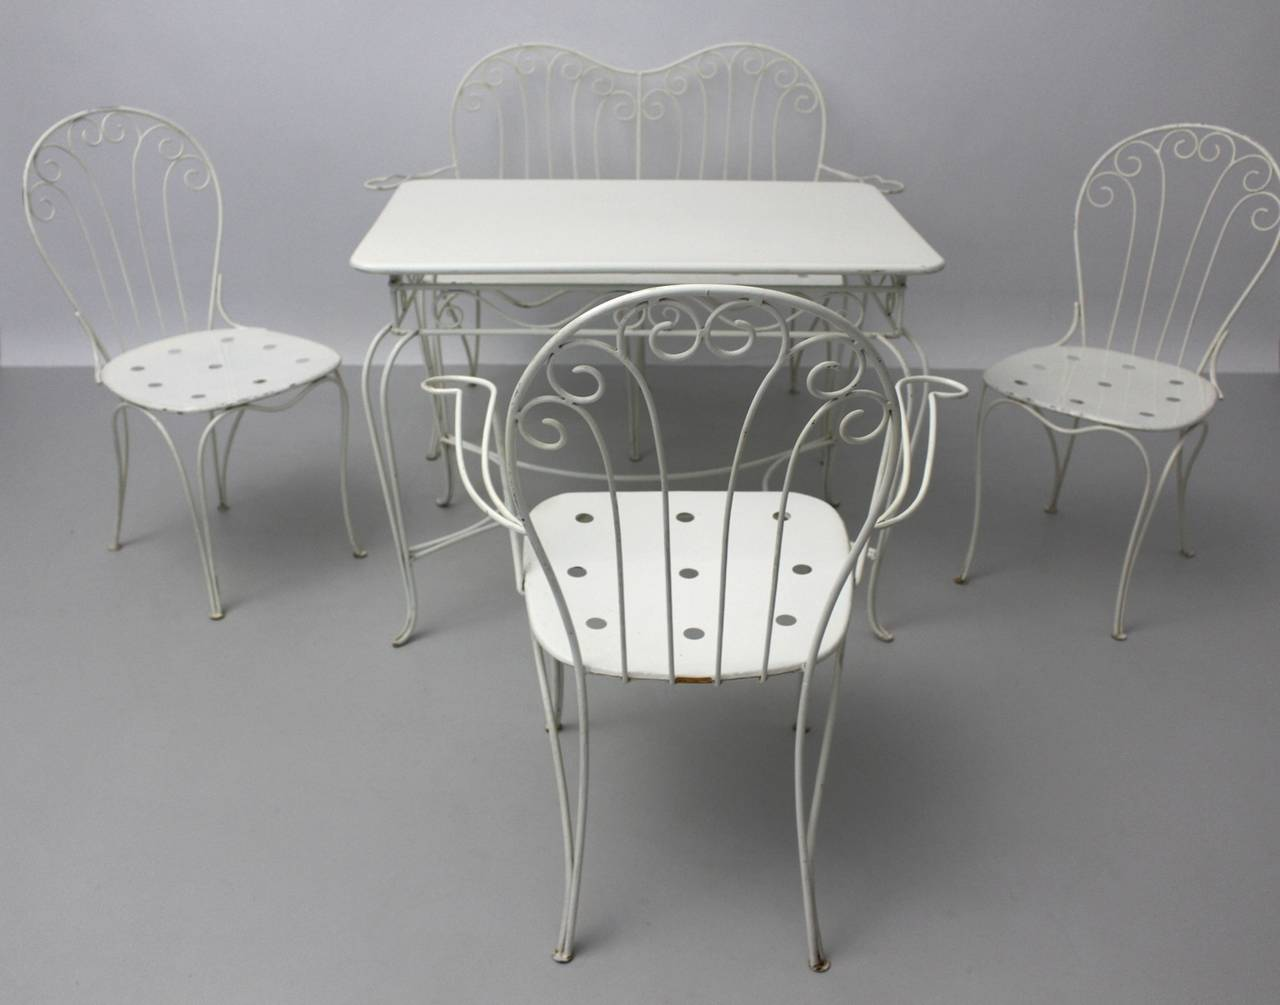 Very elegant vintage seating group designed and executed by Stanislaus Karasek and Co, 1950s, Vienna, Austria. The seating group is usable for indoor and outdoor.  This charming garden seating set from the 1950s consists of one bench, one armchair,